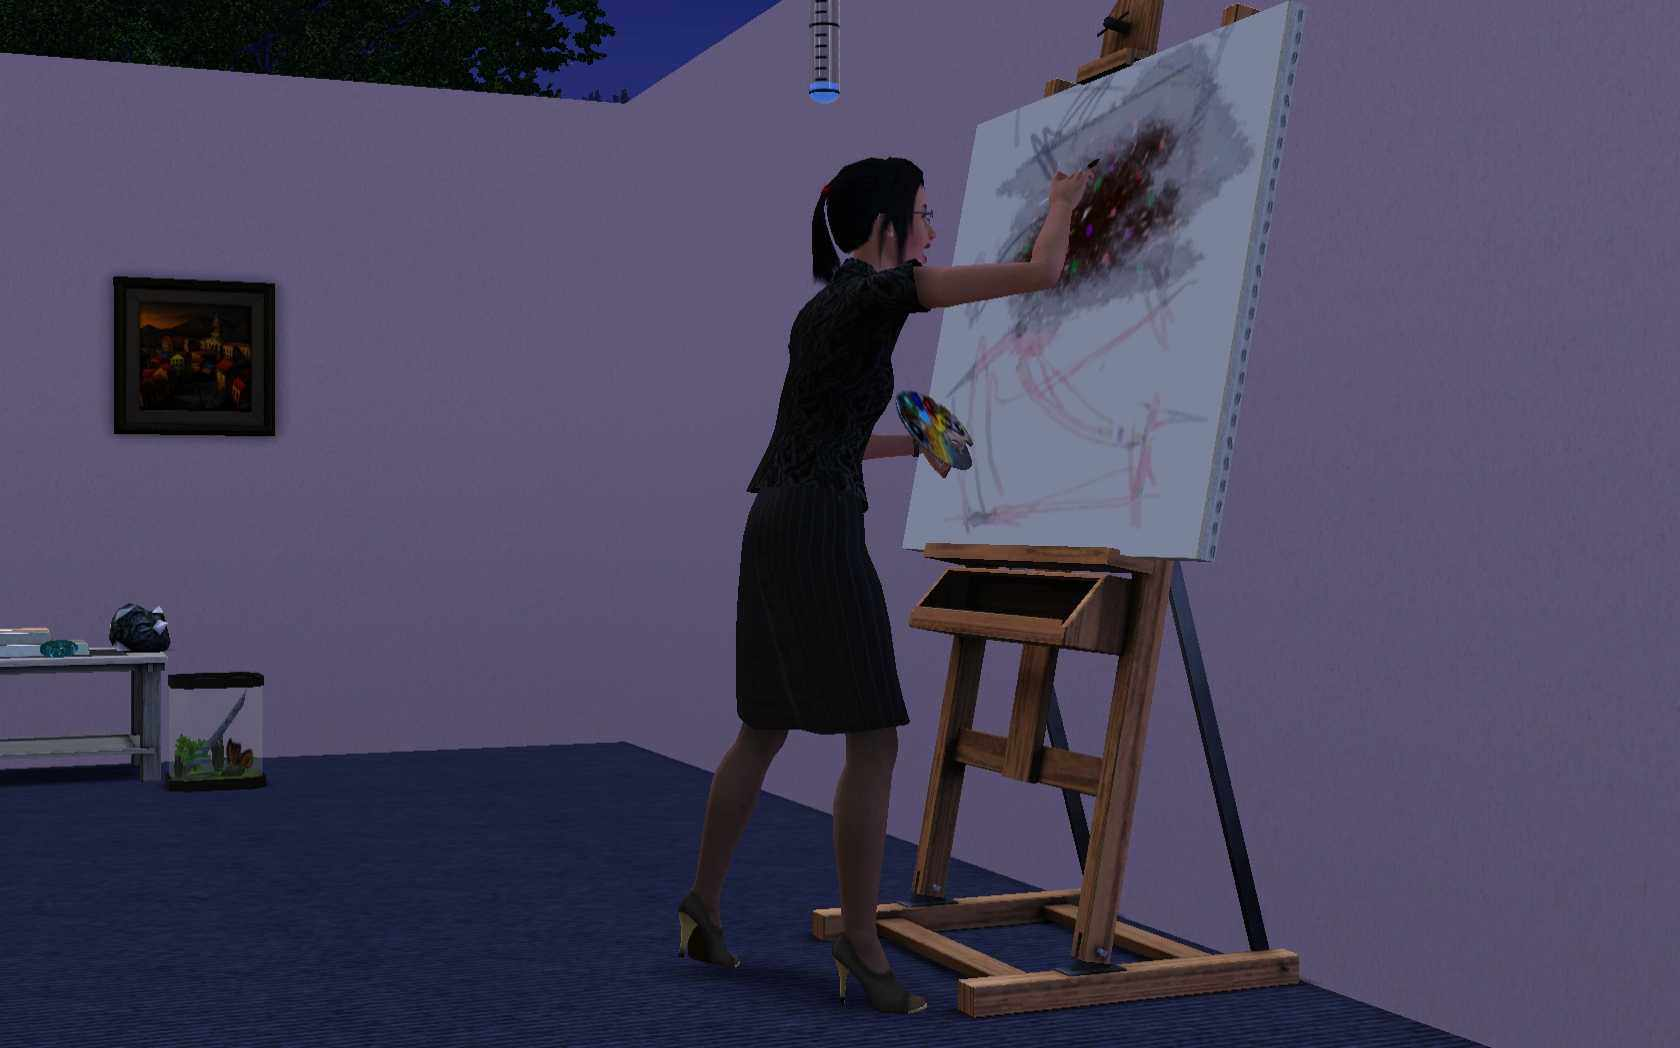 The Sims 3 Skills List Information And Tips 89 Club Car Golf Cart Wiring Diagram Painting In